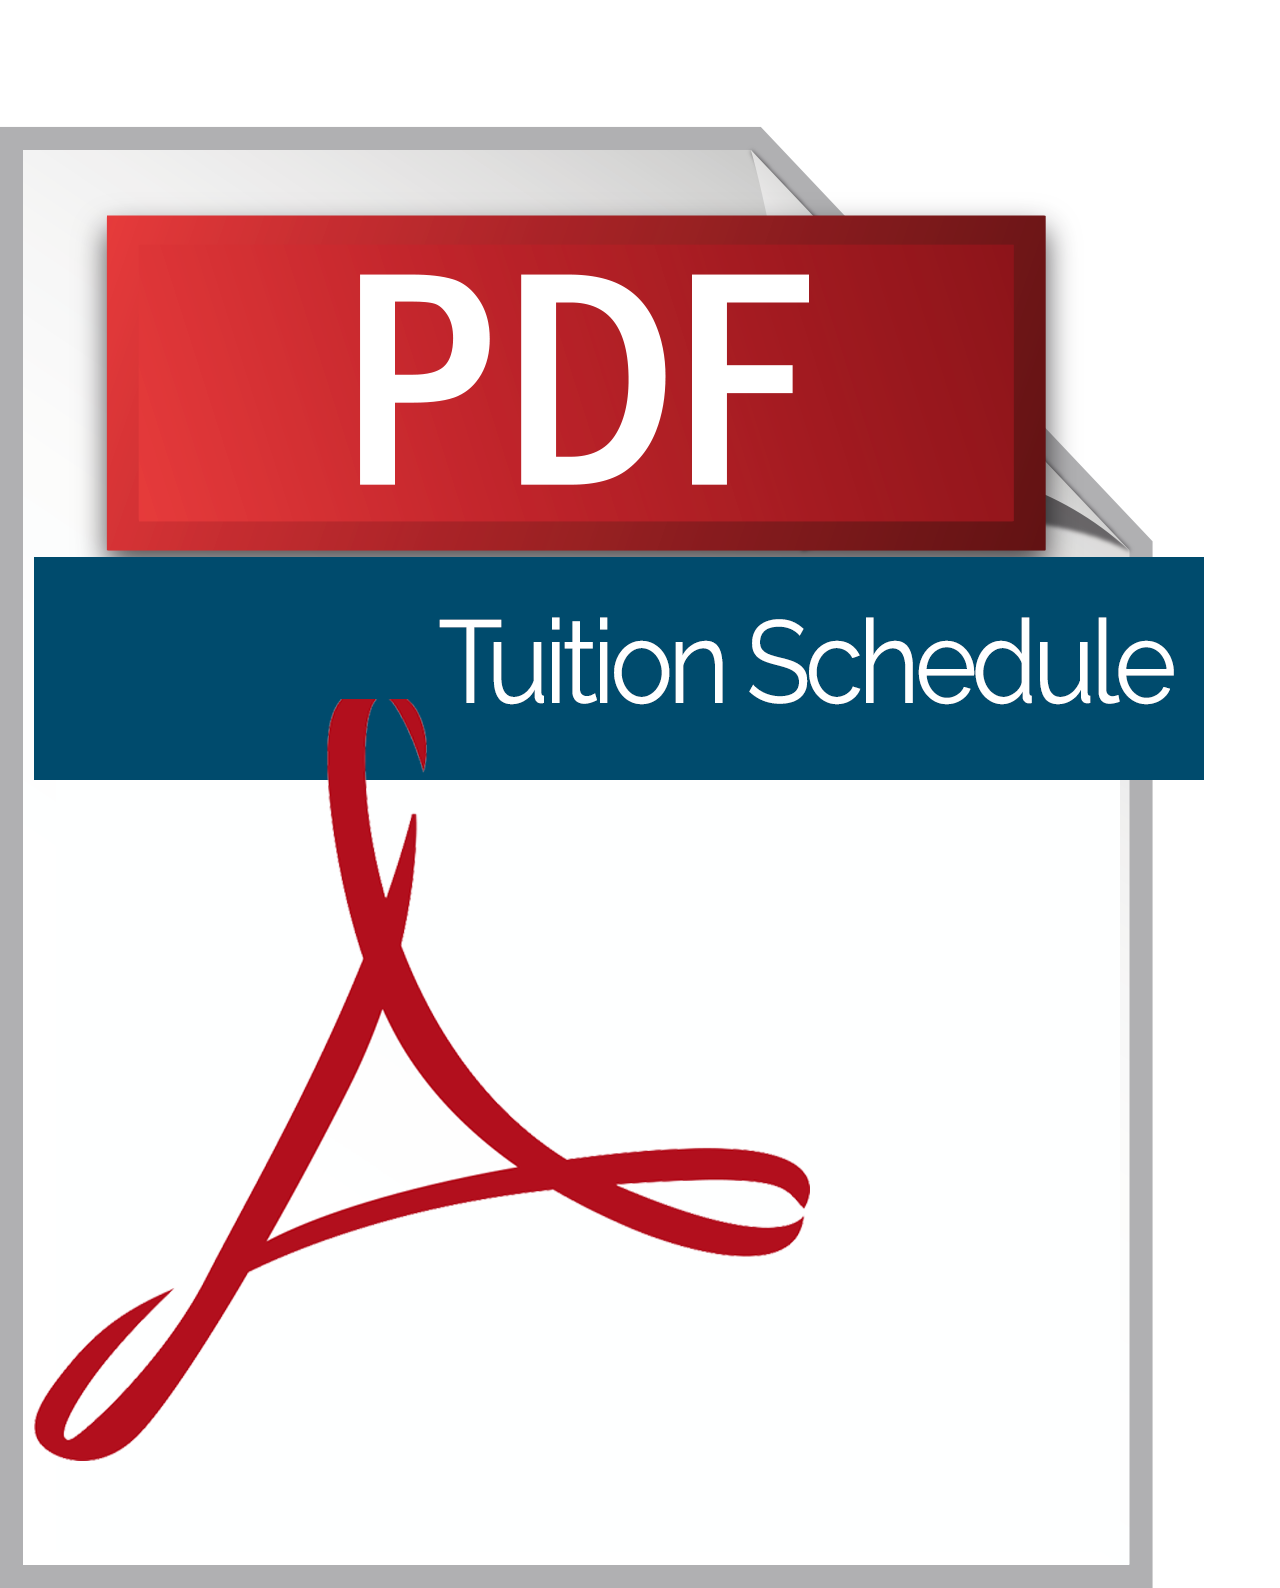 2016-2017 Tuition Schedule